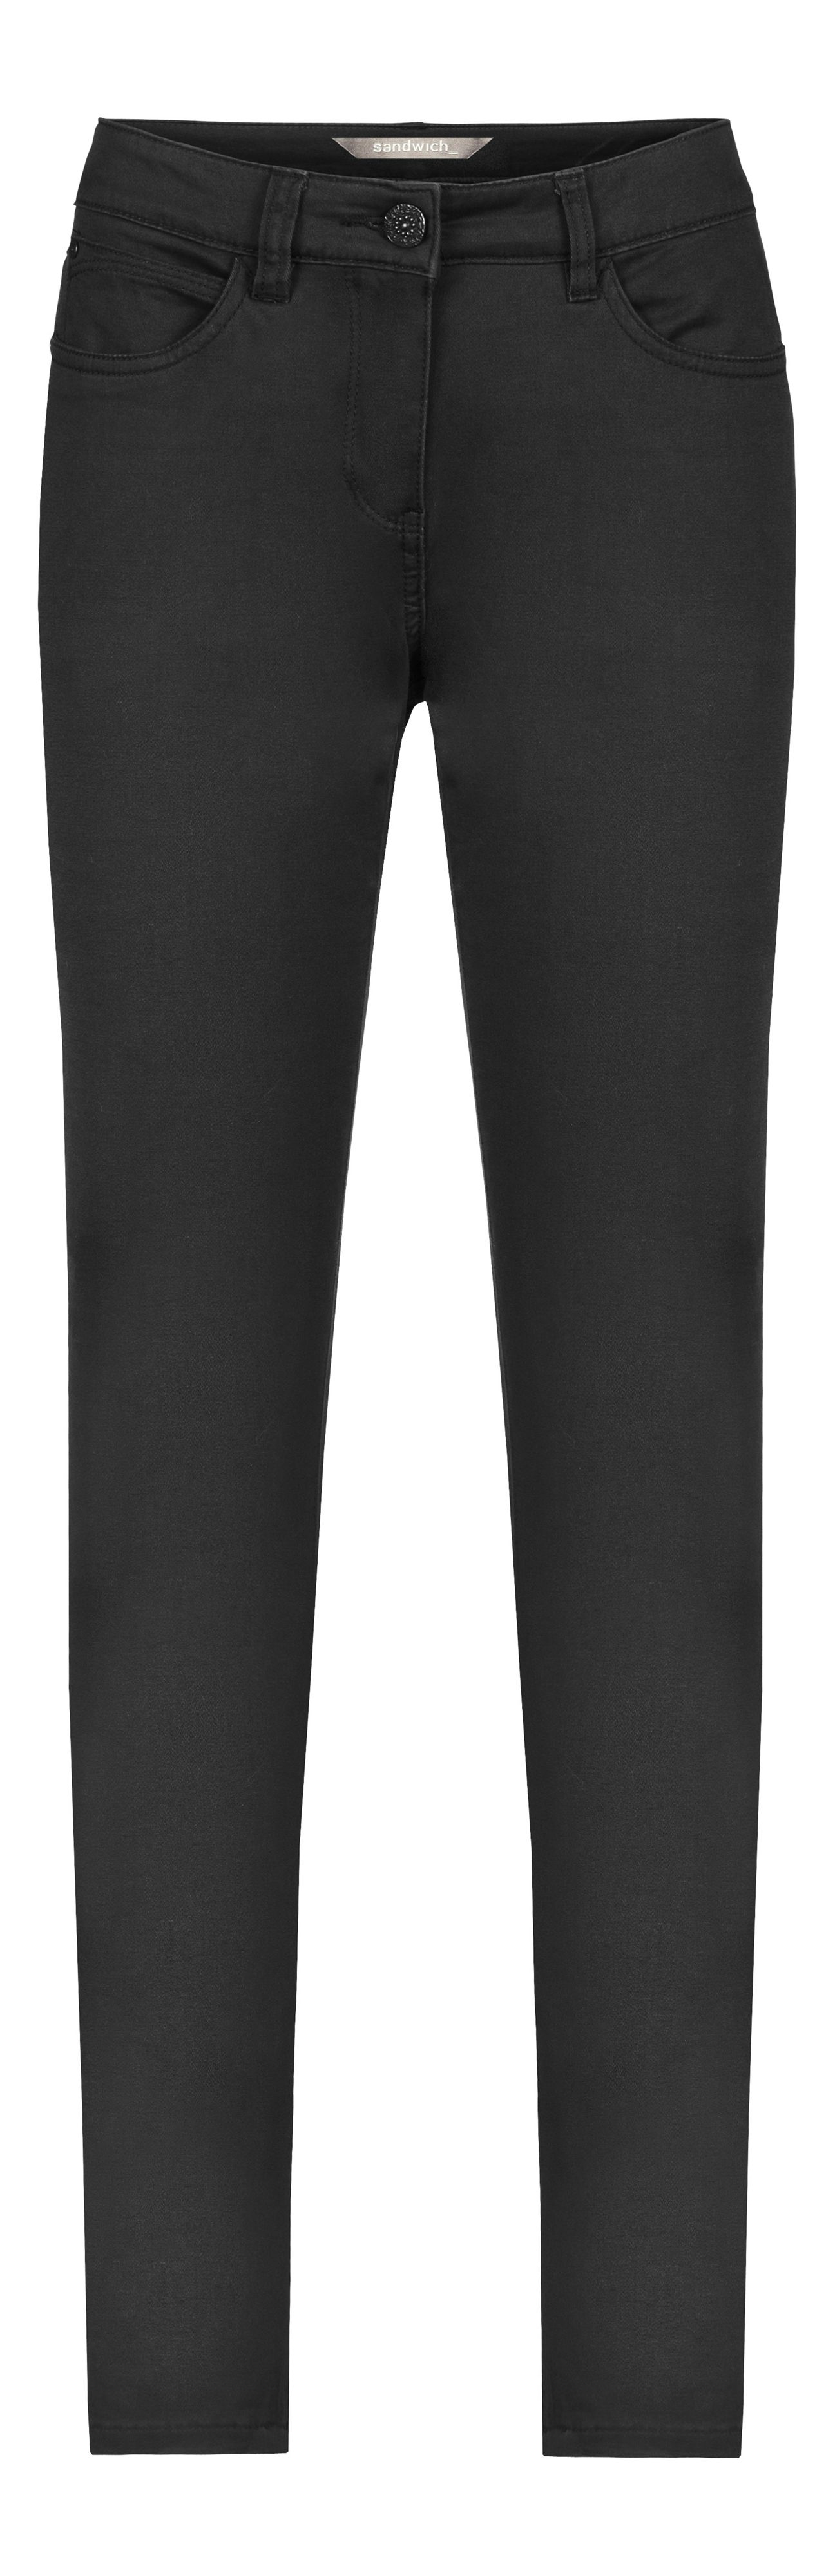 Sandwich Sandwich Cotton stretch skinny jeans, Black